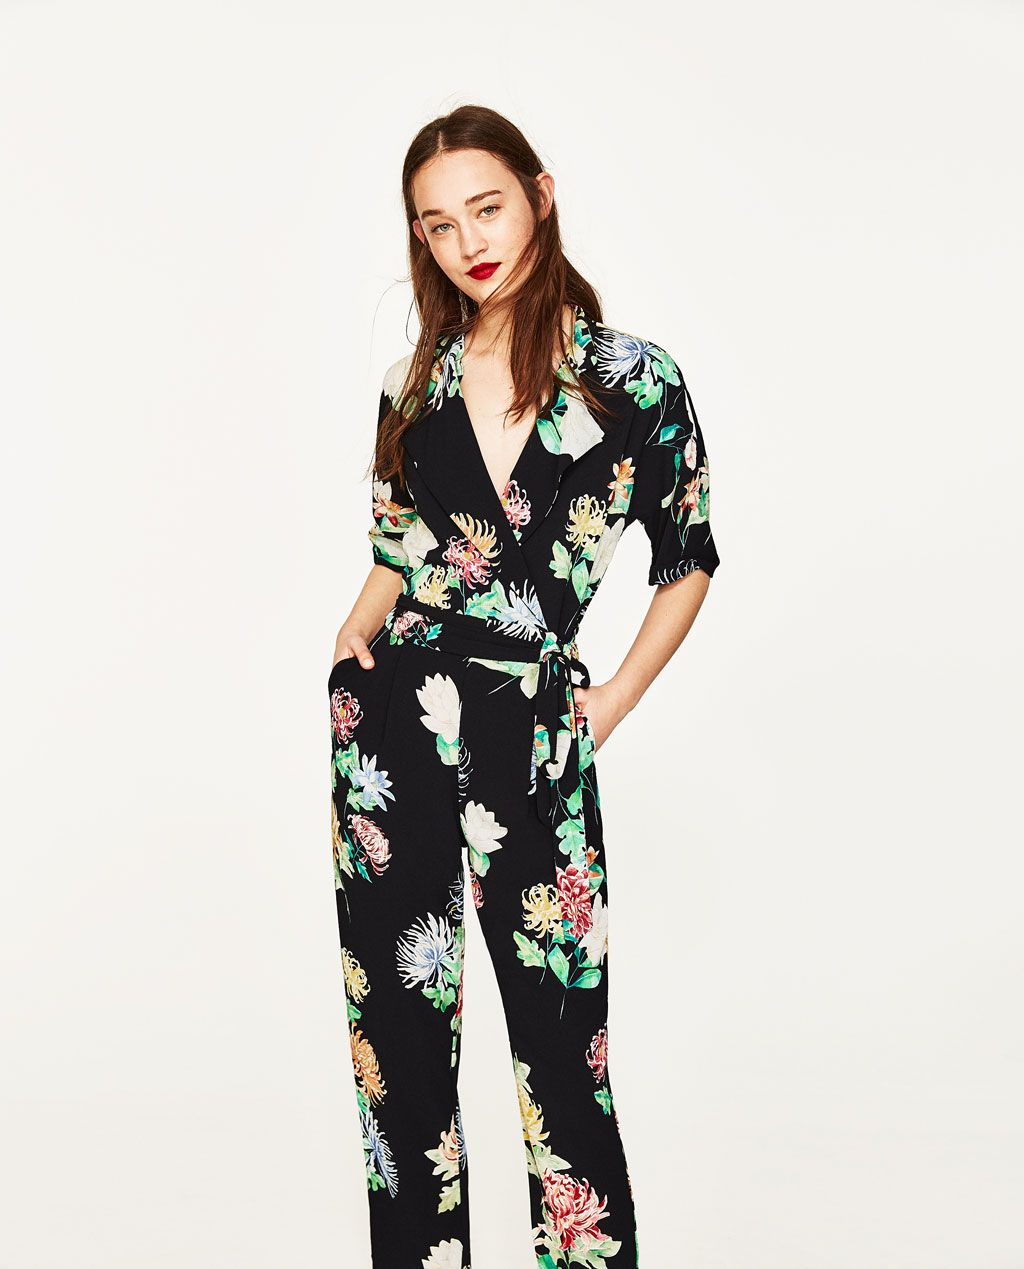 Crossover Print Jumpsuit United Jumpsuits WomanZara States Floral CoWdrxeQB